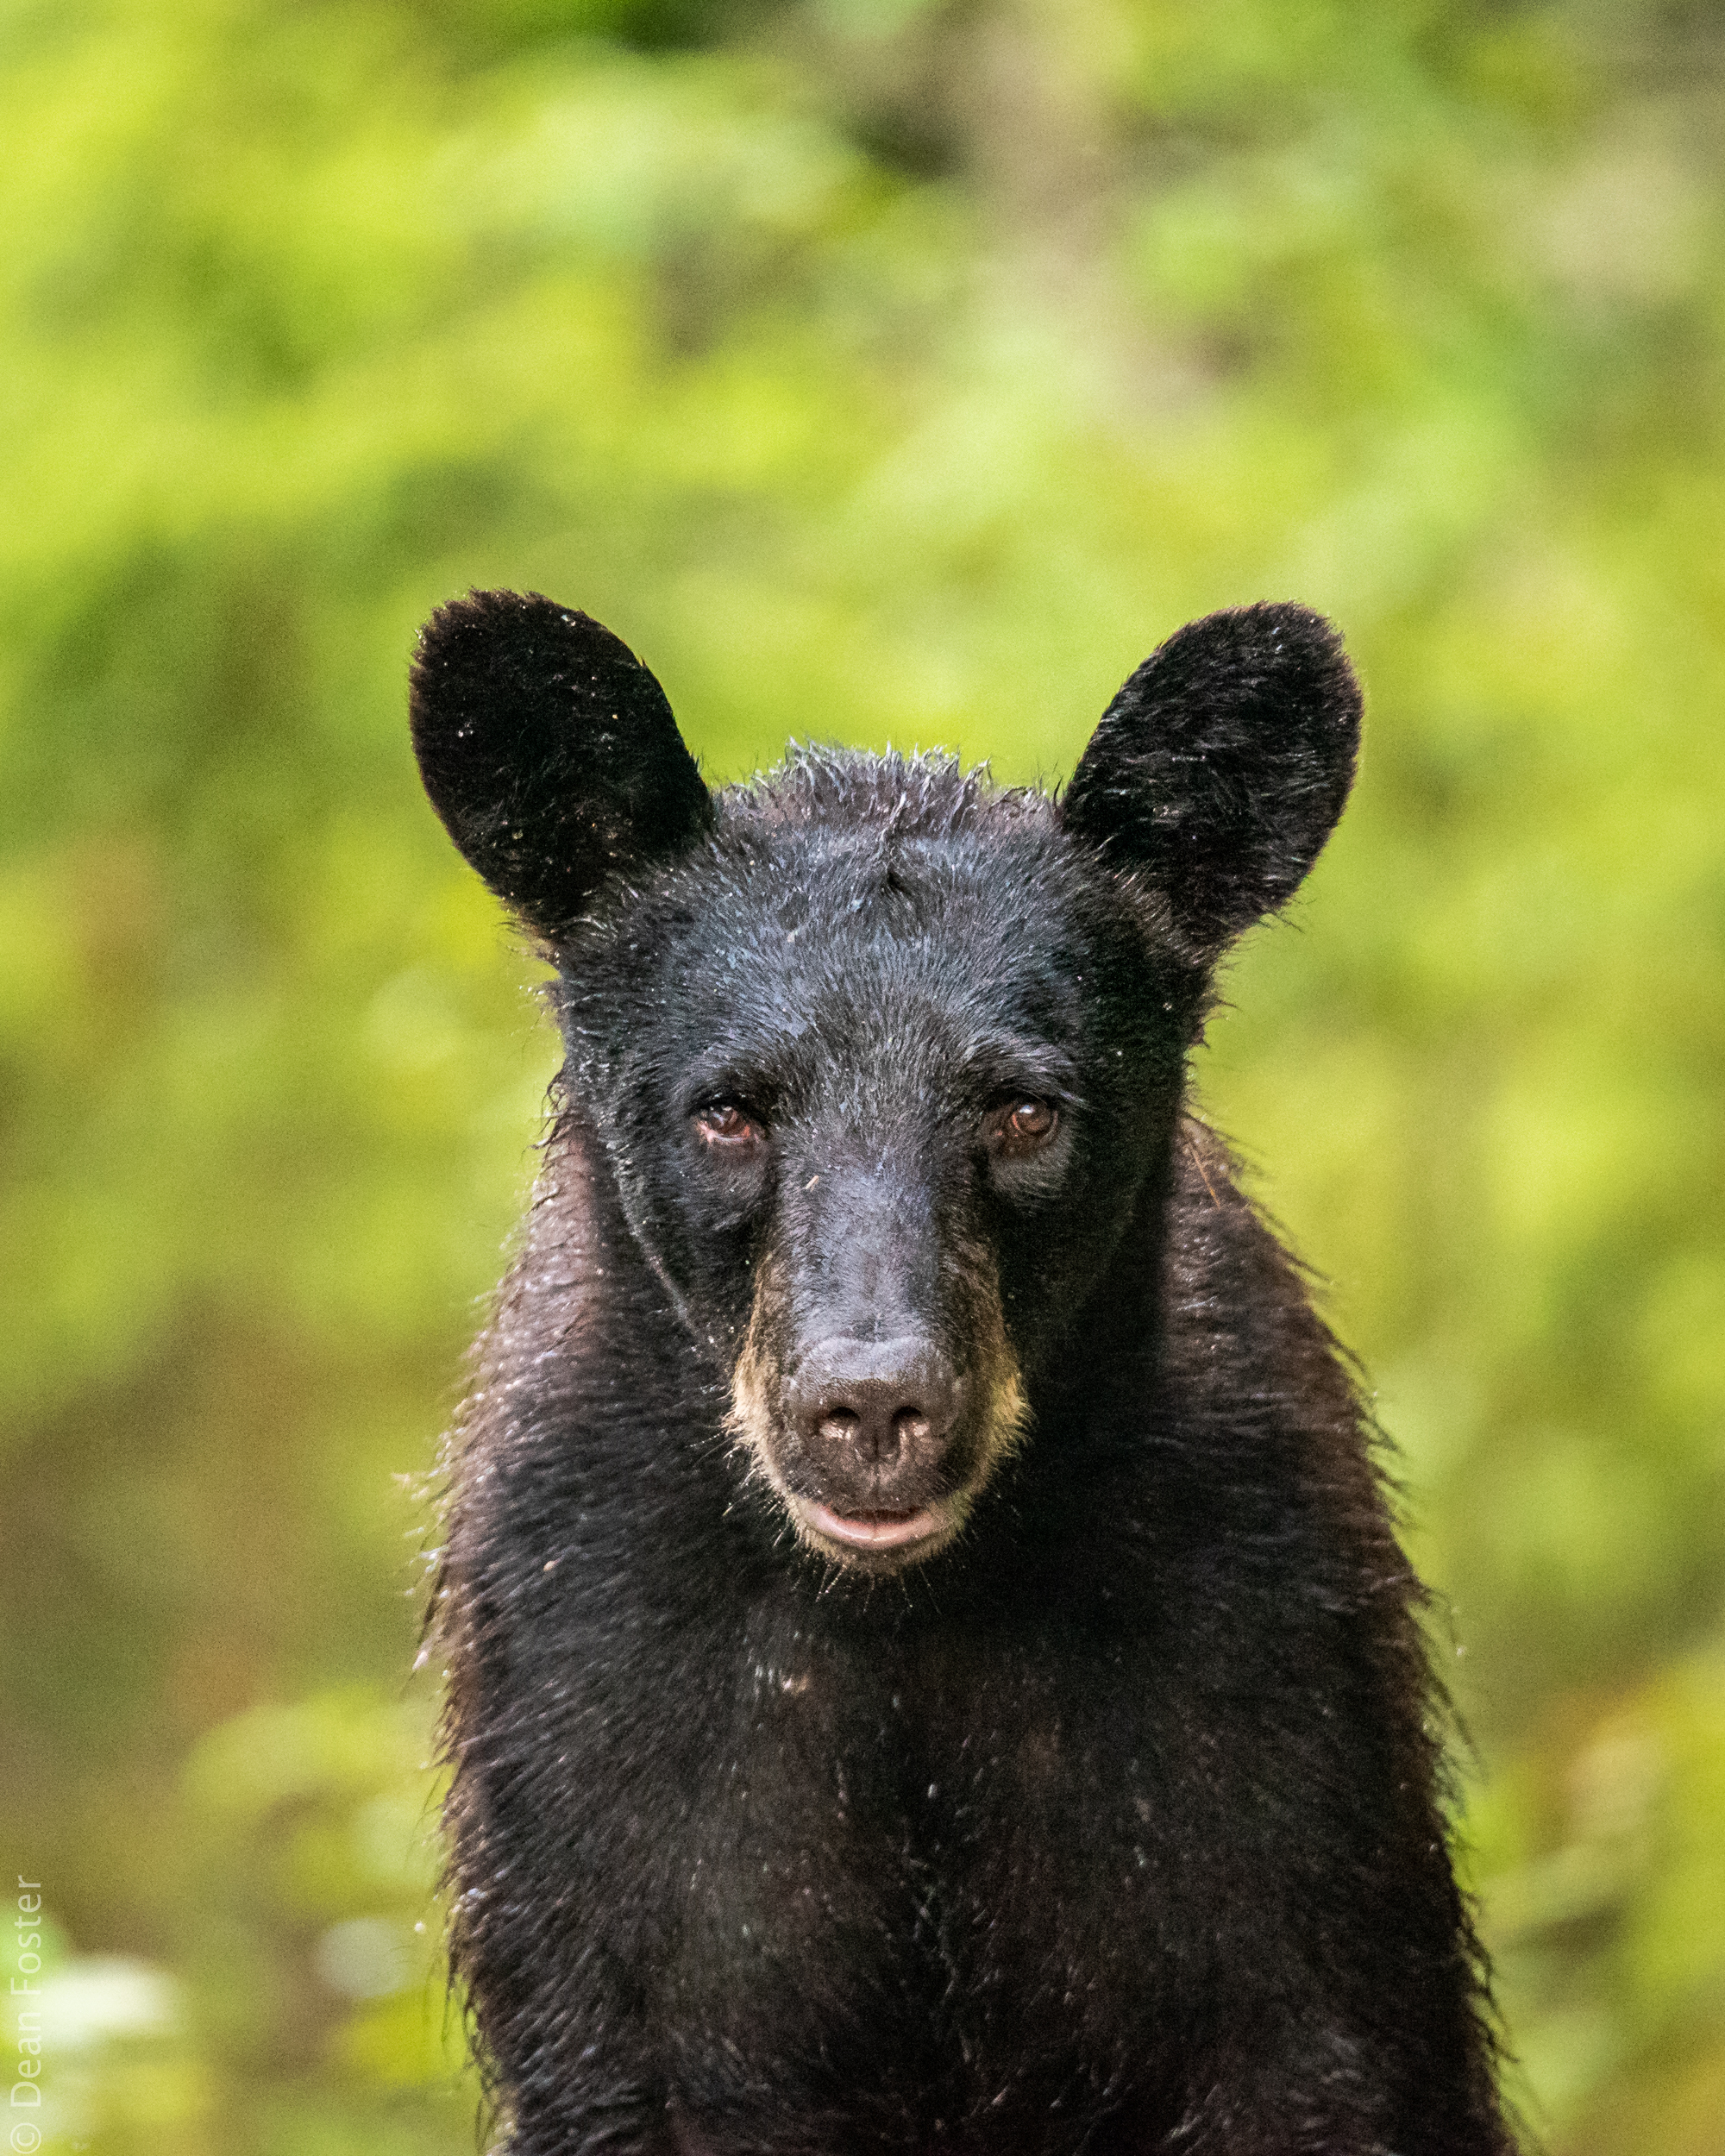 This young black bear wasn't too shy and was more than